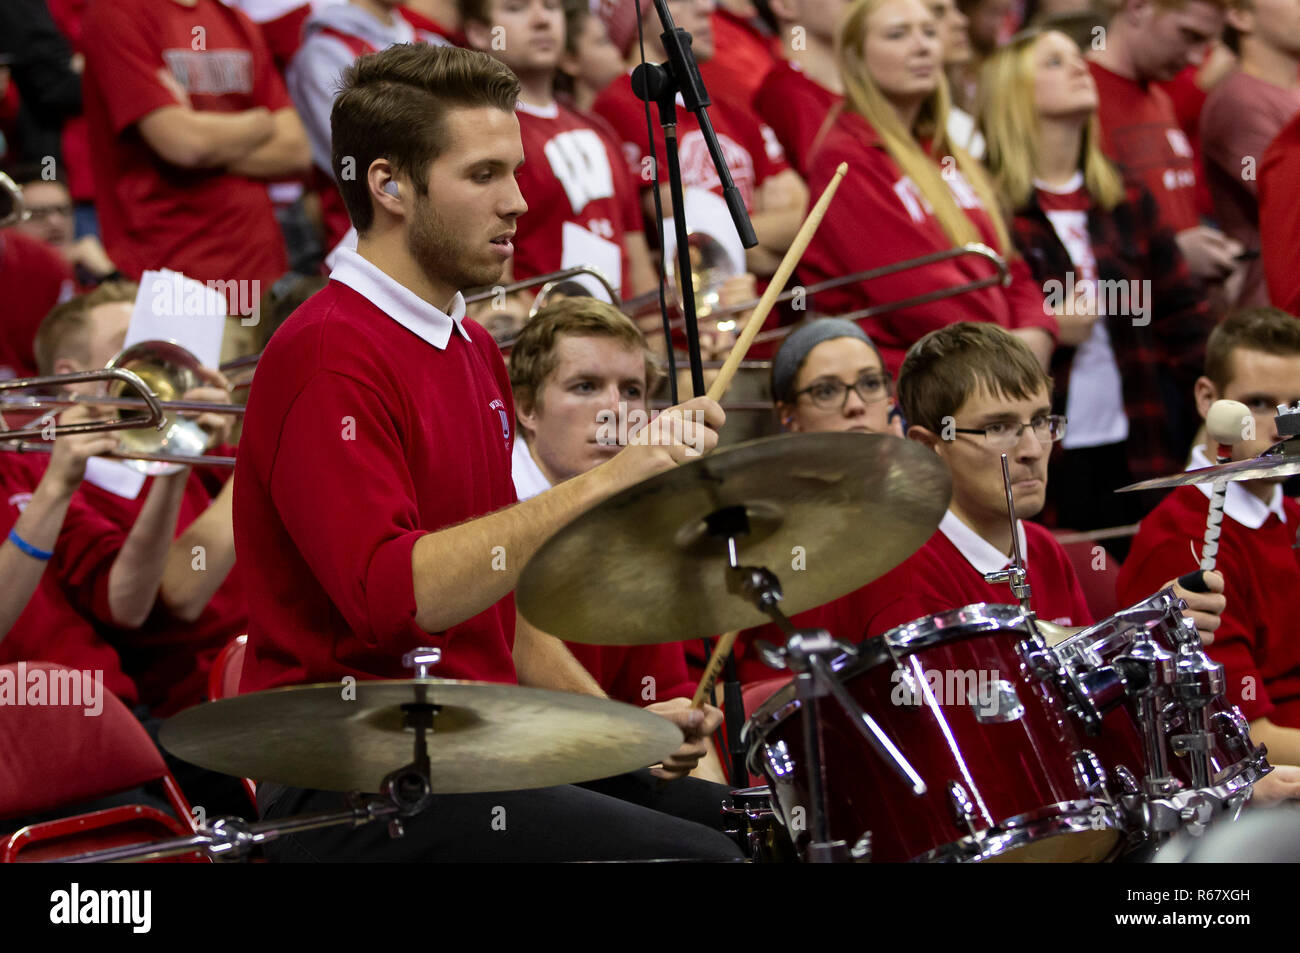 Madison, WI, USA. 3rd Dec, 2018. Wisconsin band member plays during the NCAA Basketball game between the Rutgers Scarlet Knights and the Wisconsin Badgers at the Kohl Center in Madison, WI. Wisconsin defeated Rutgers 69-64. John Fisher/CSM/Alamy Live News - Stock Image